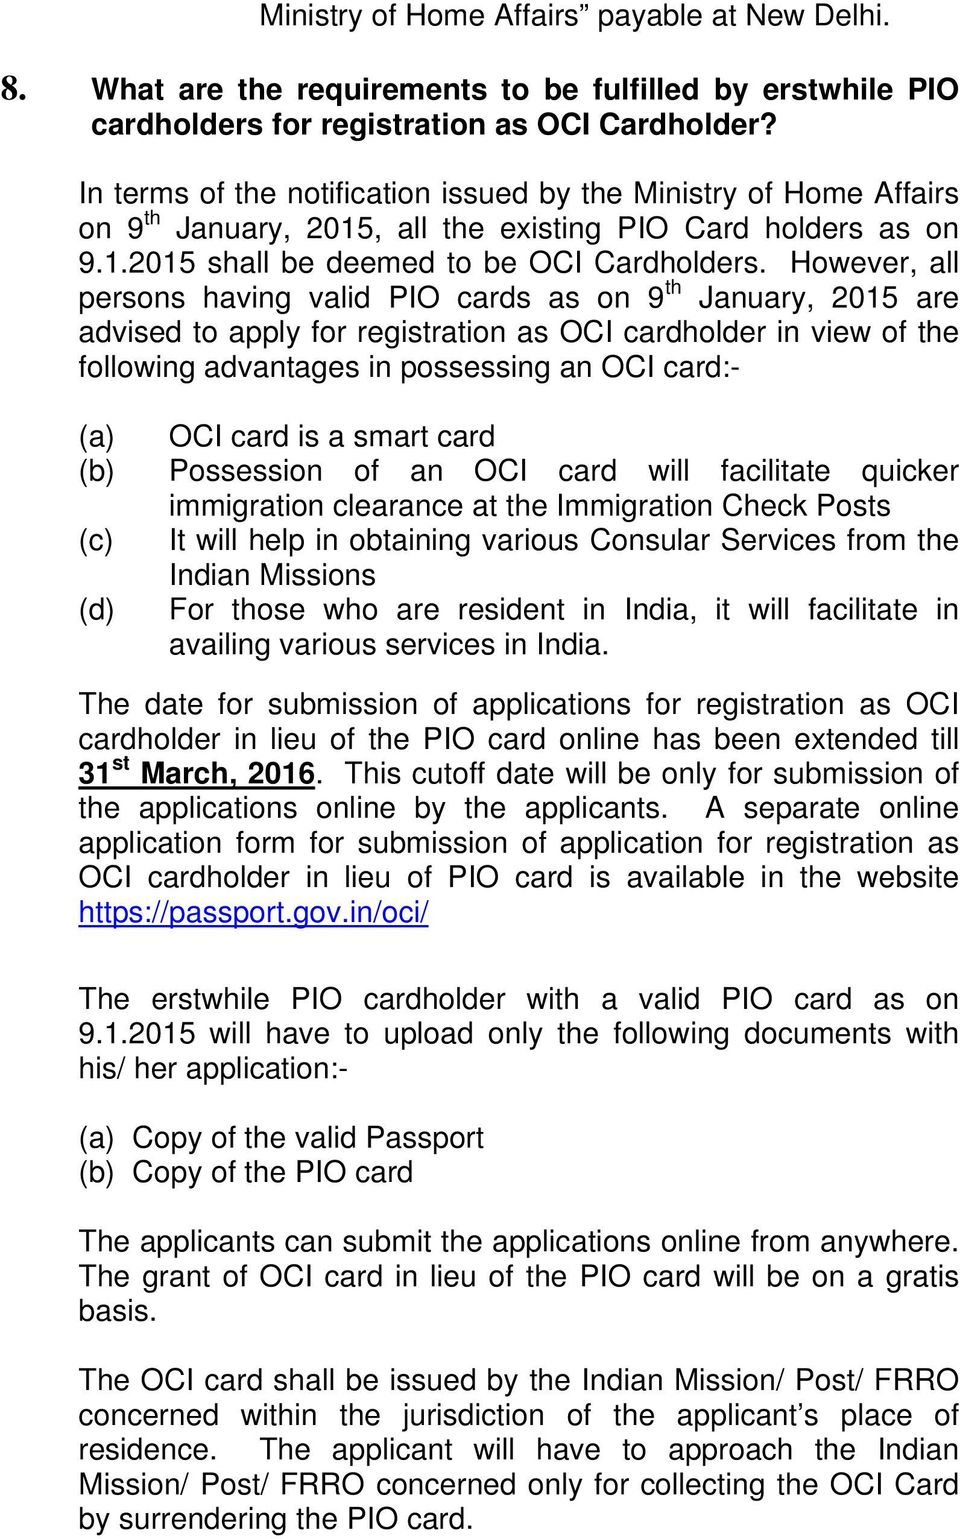 However, all persons having valid PIO cards as on 9 th January, 2015 are advised to apply for registration as OCI cardholder in view of the following advantages in possessing an OCI card:- (a) OCI